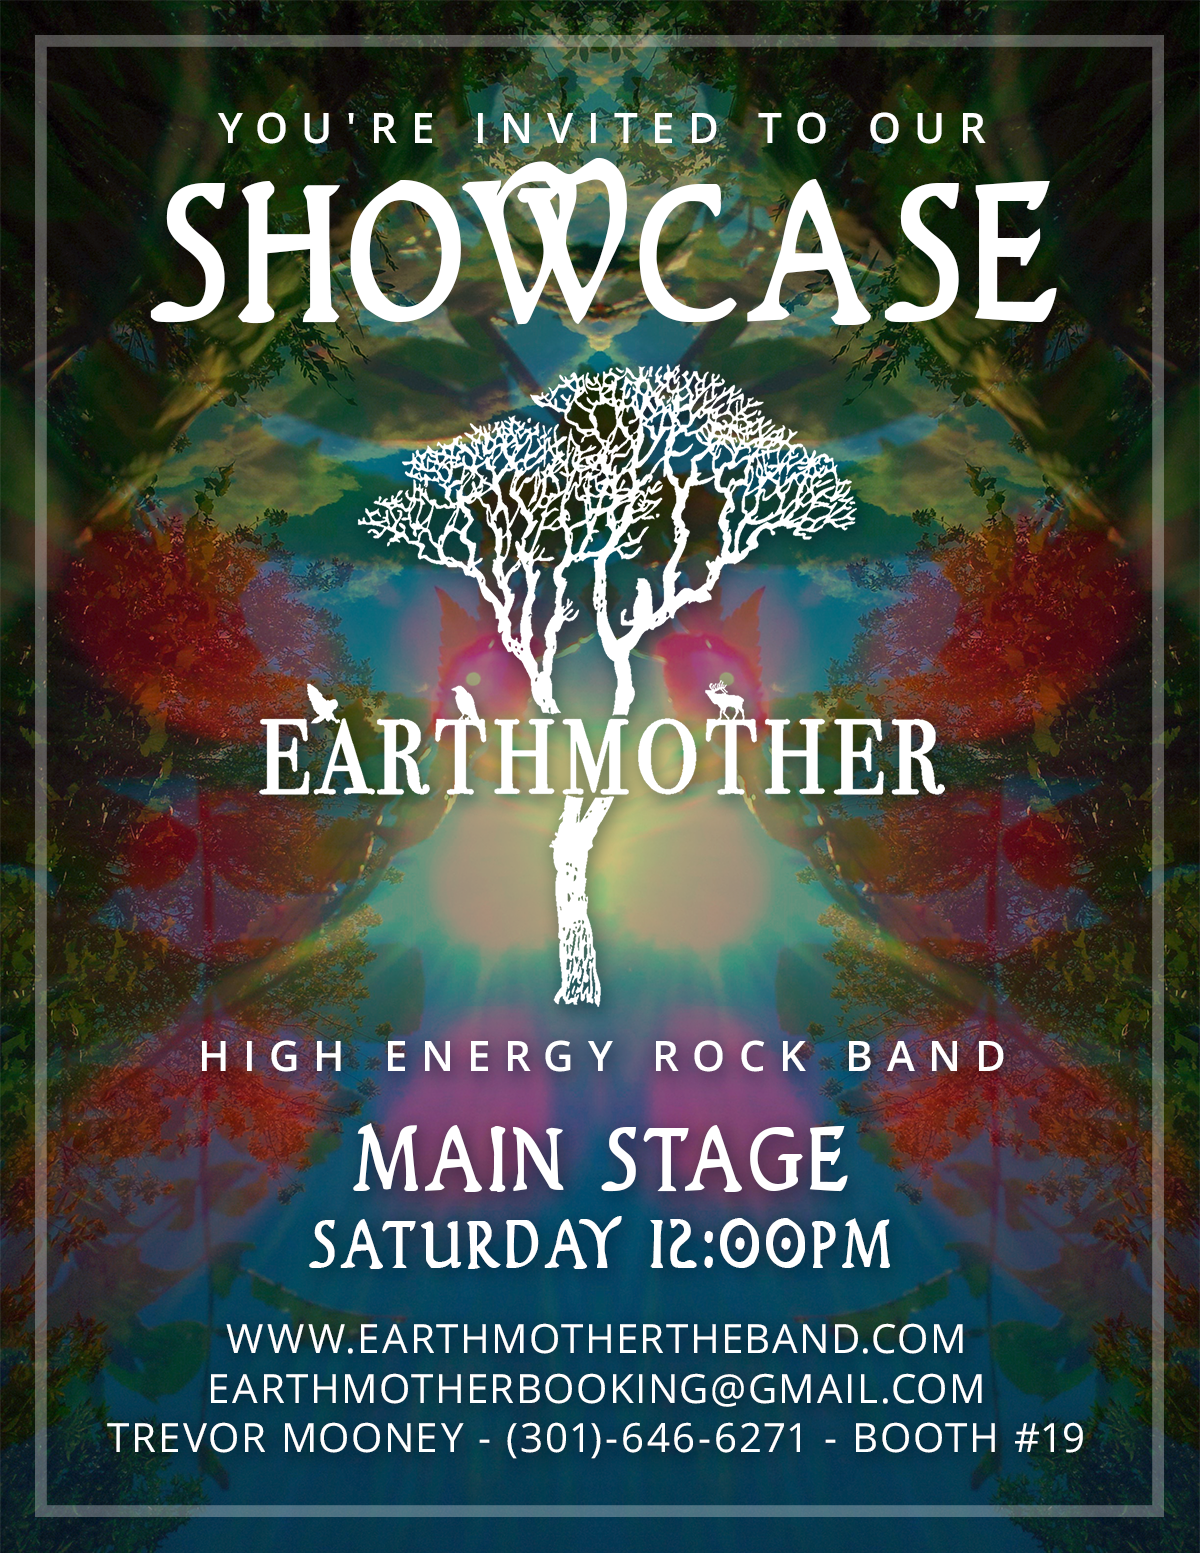 Earthmother-Showcase-2018-01-web.png